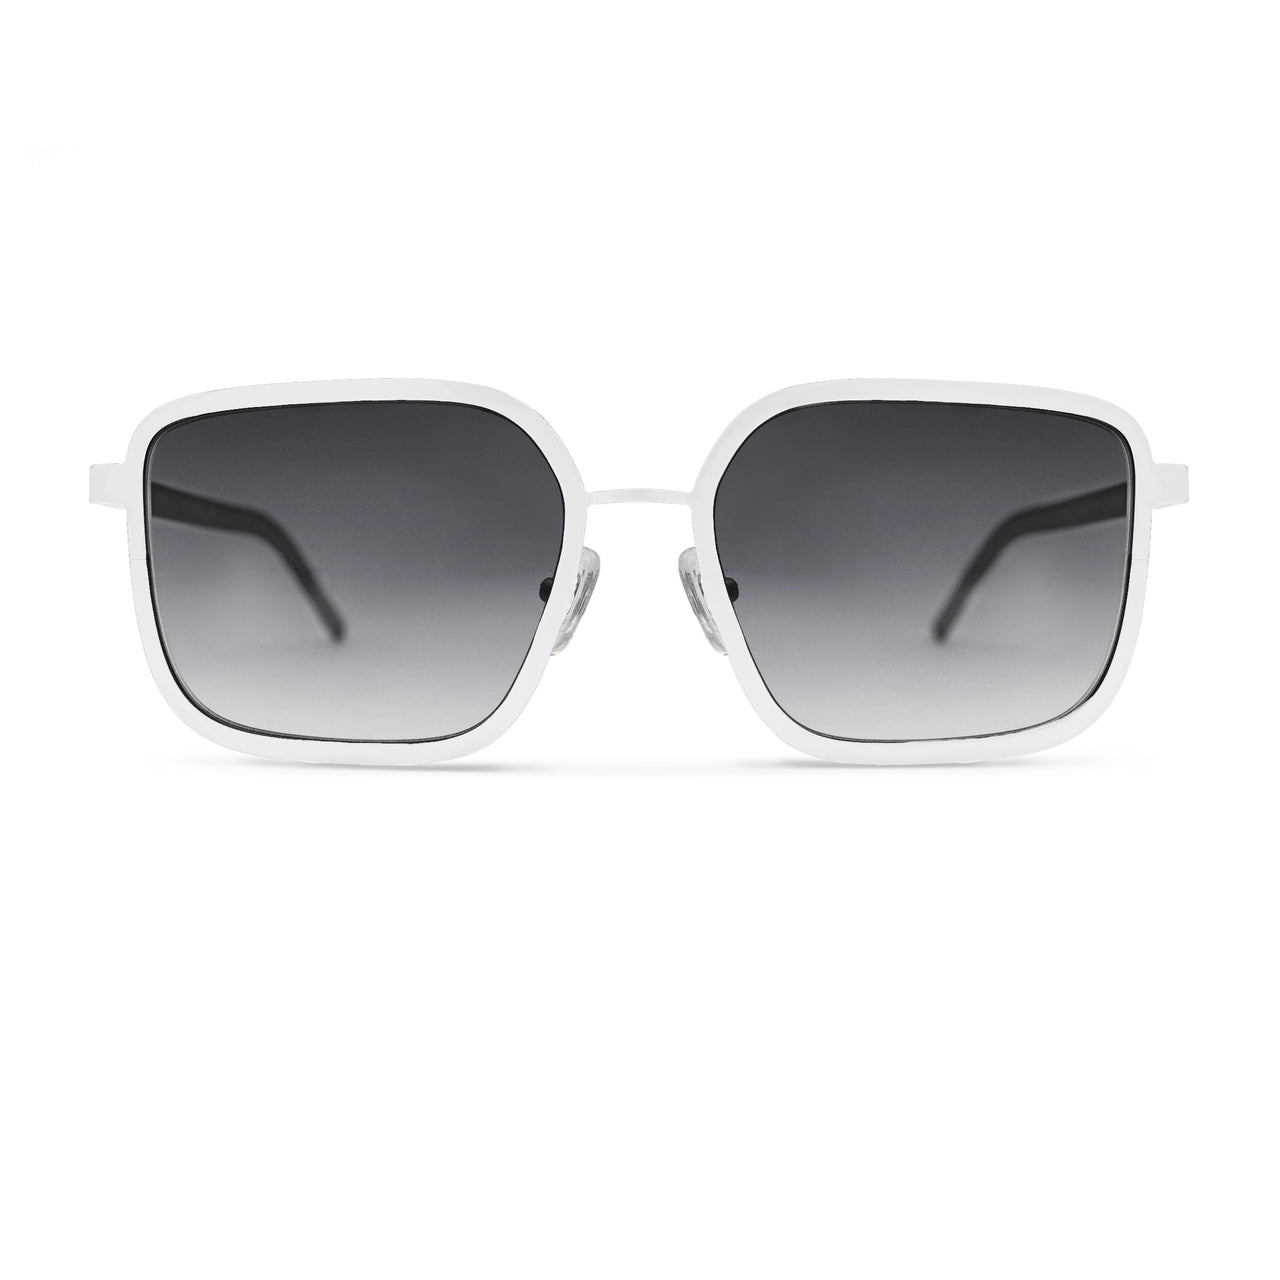 Metal. Porcelain. Smoke Lens. - BLYSZAK eyewear eyewear - eyewear, optical, sunglasses